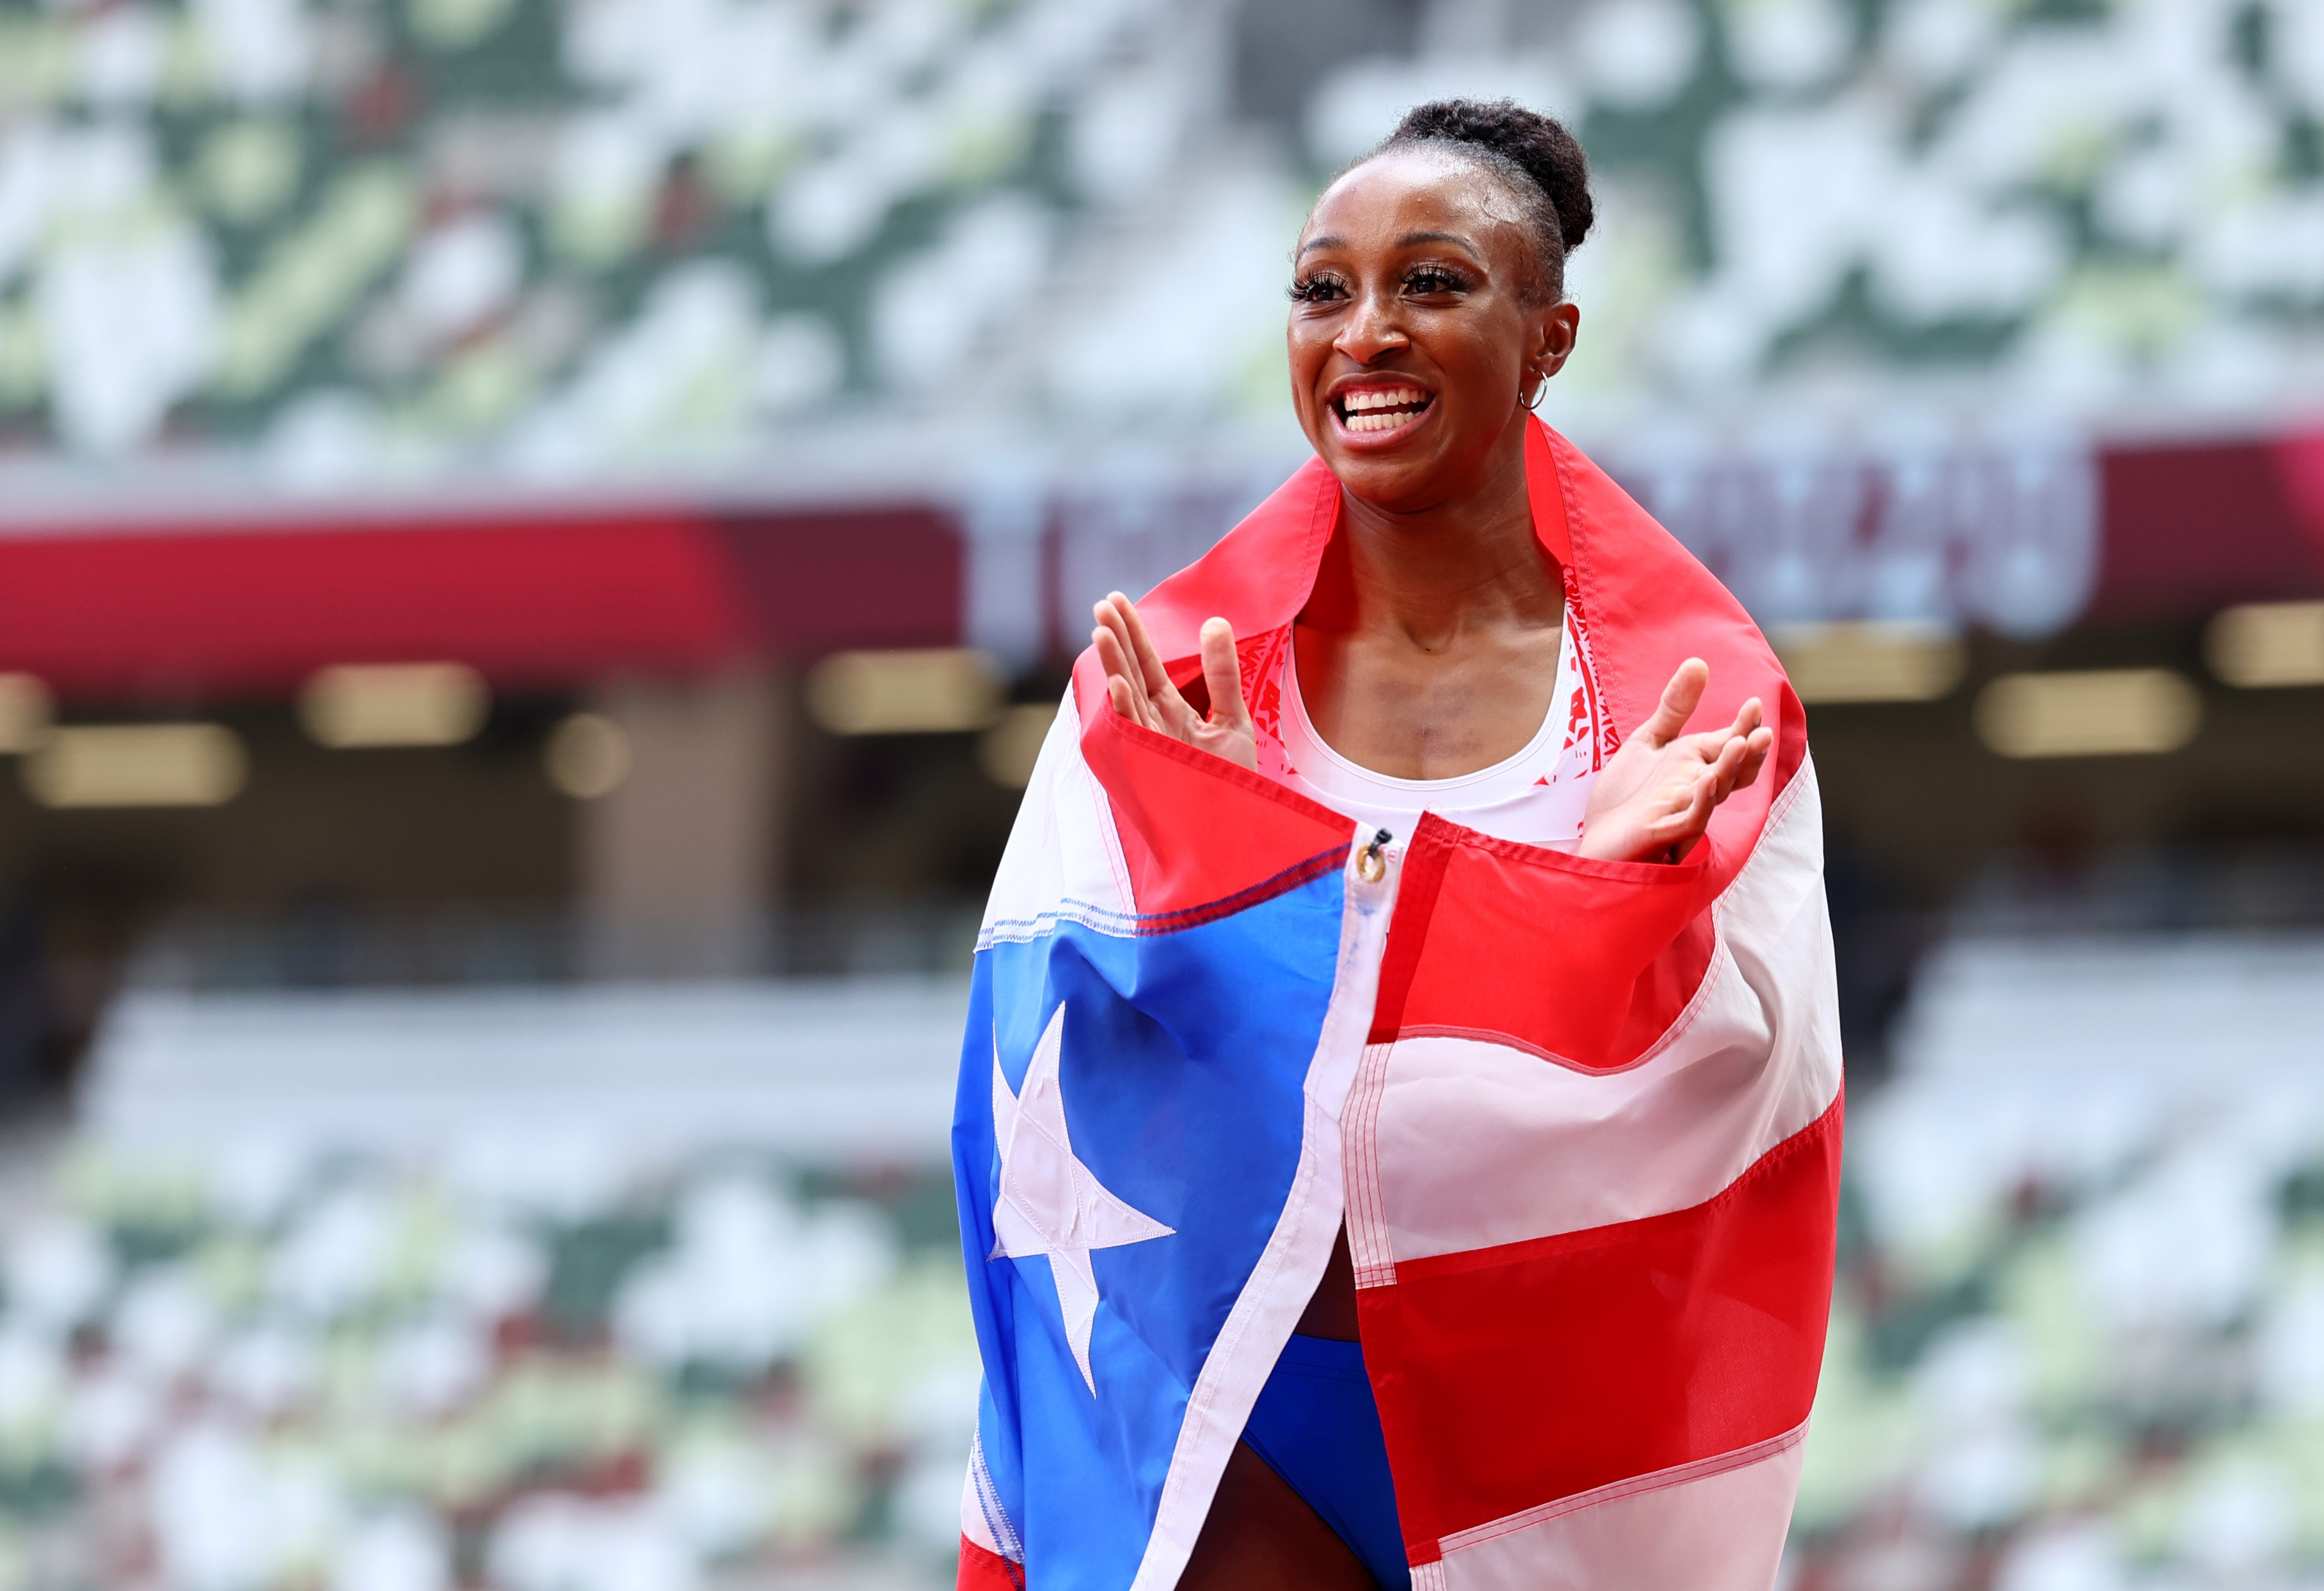 Tokyo 2020 Olympics - Athletics - Women's 100m Hurdles - Final - Olympic Stadium, Tokyo, Japan - August 2, 2021. Jasmine Camacho-Quinn of Puerto Rico celebrates with her national flag after winning gold REUTERS/Lucy Nicholson